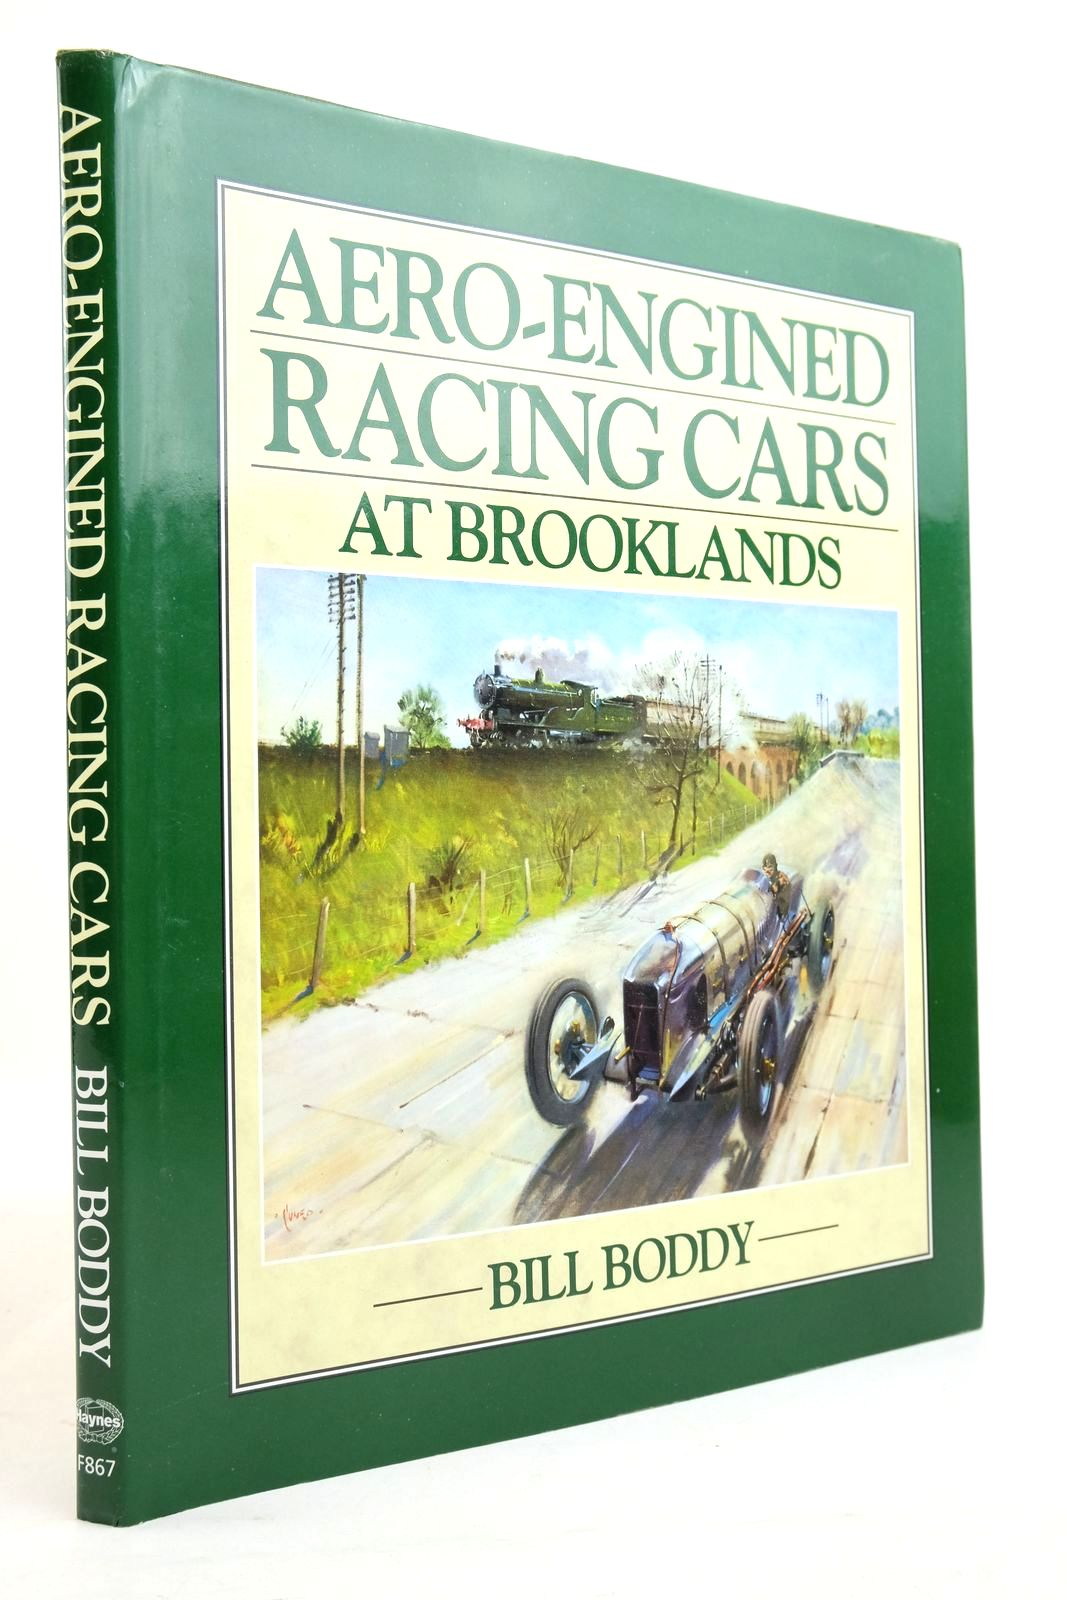 Photo of AERO-ENGINED RACING CARS AT BROOKLANDS written by Boddy, William published by Haynes Publishing Group (STOCK CODE: 2134643)  for sale by Stella & Rose's Books